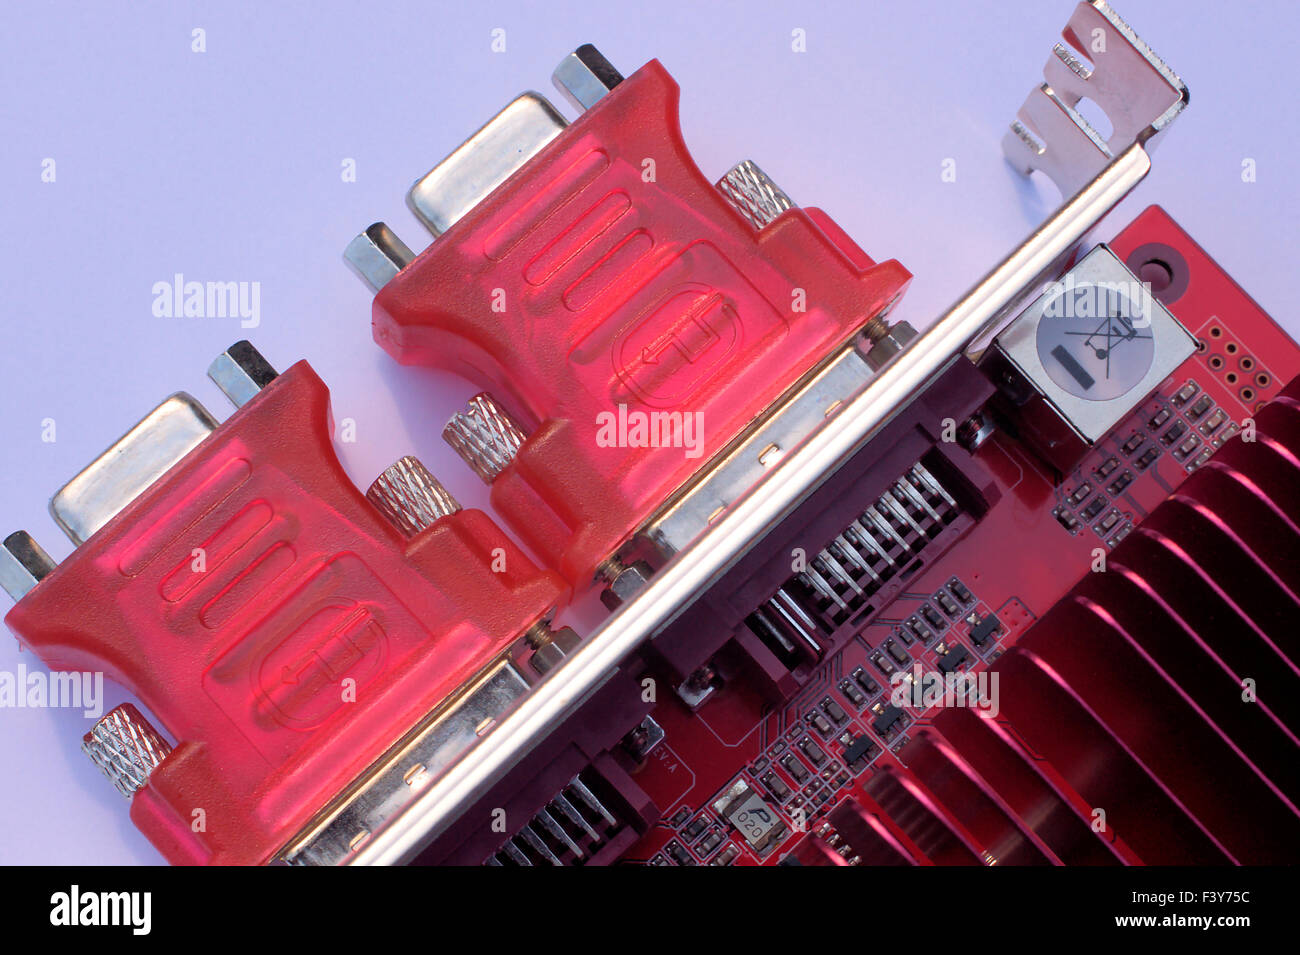 close-up picture of pc-hardware - Stock Image